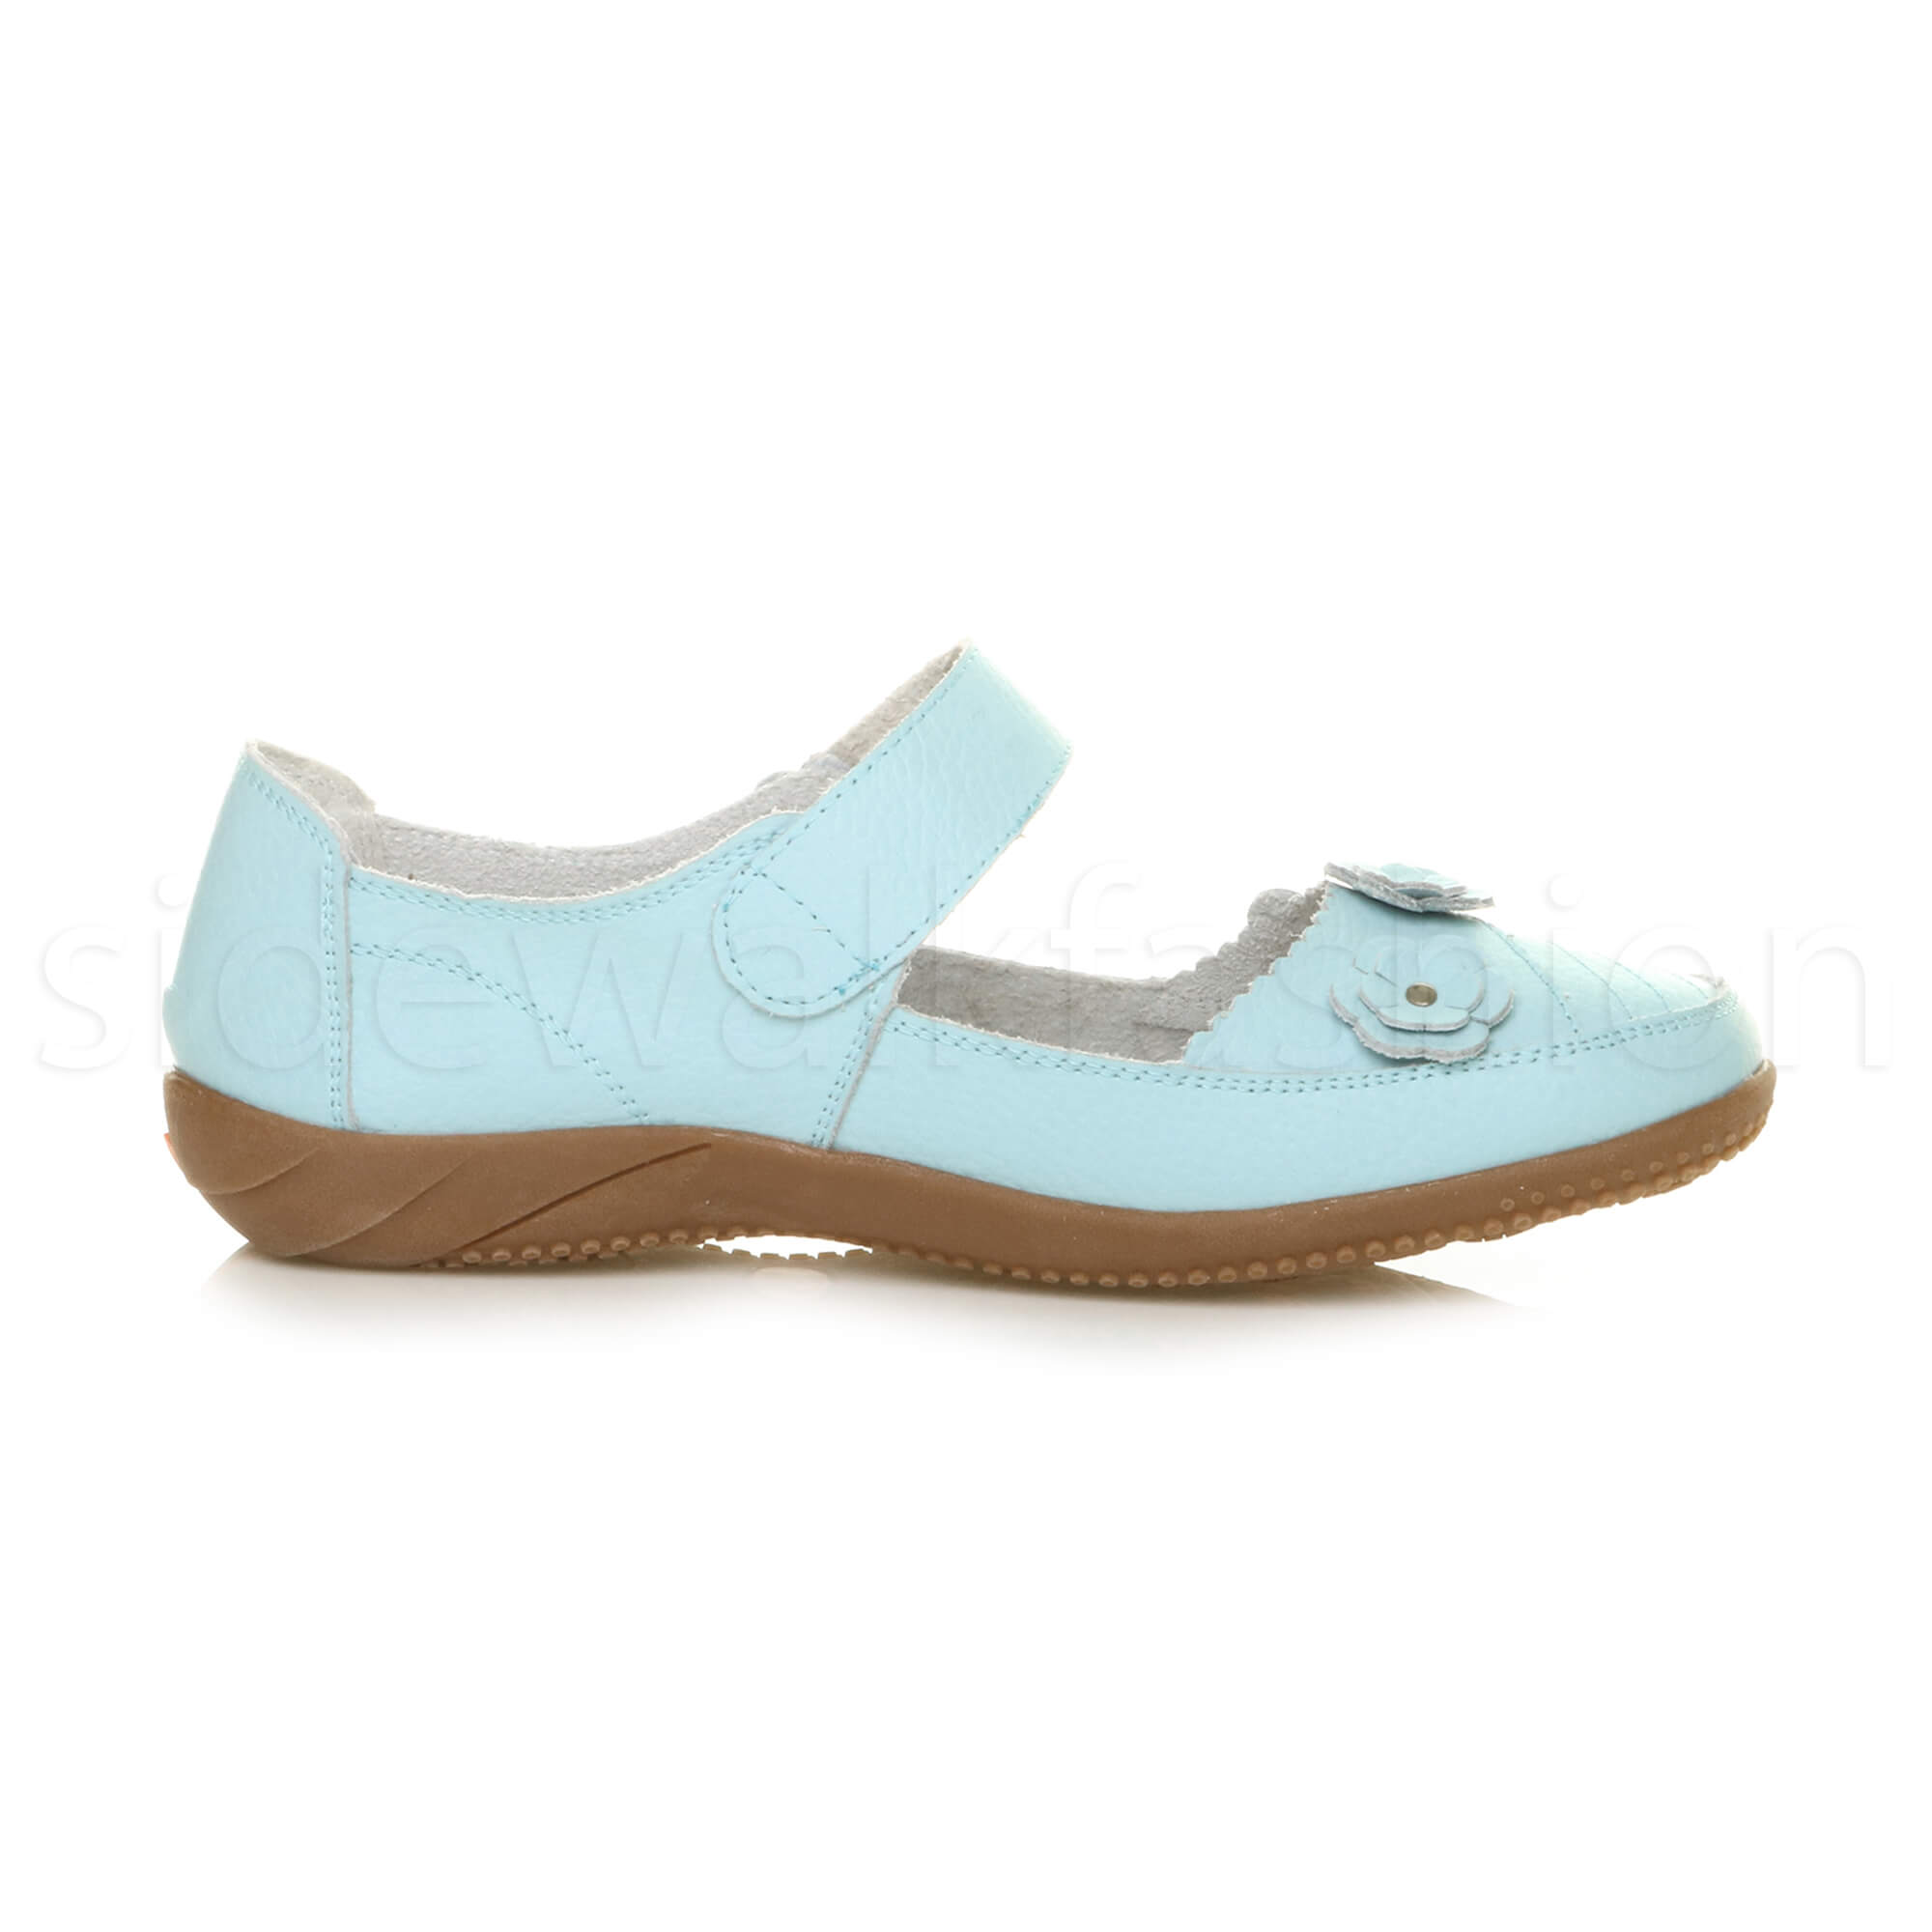 Womens-ladies-leather-comfort-walking-casual-sandals-mary-jane-strap-shoes-size thumbnail 49